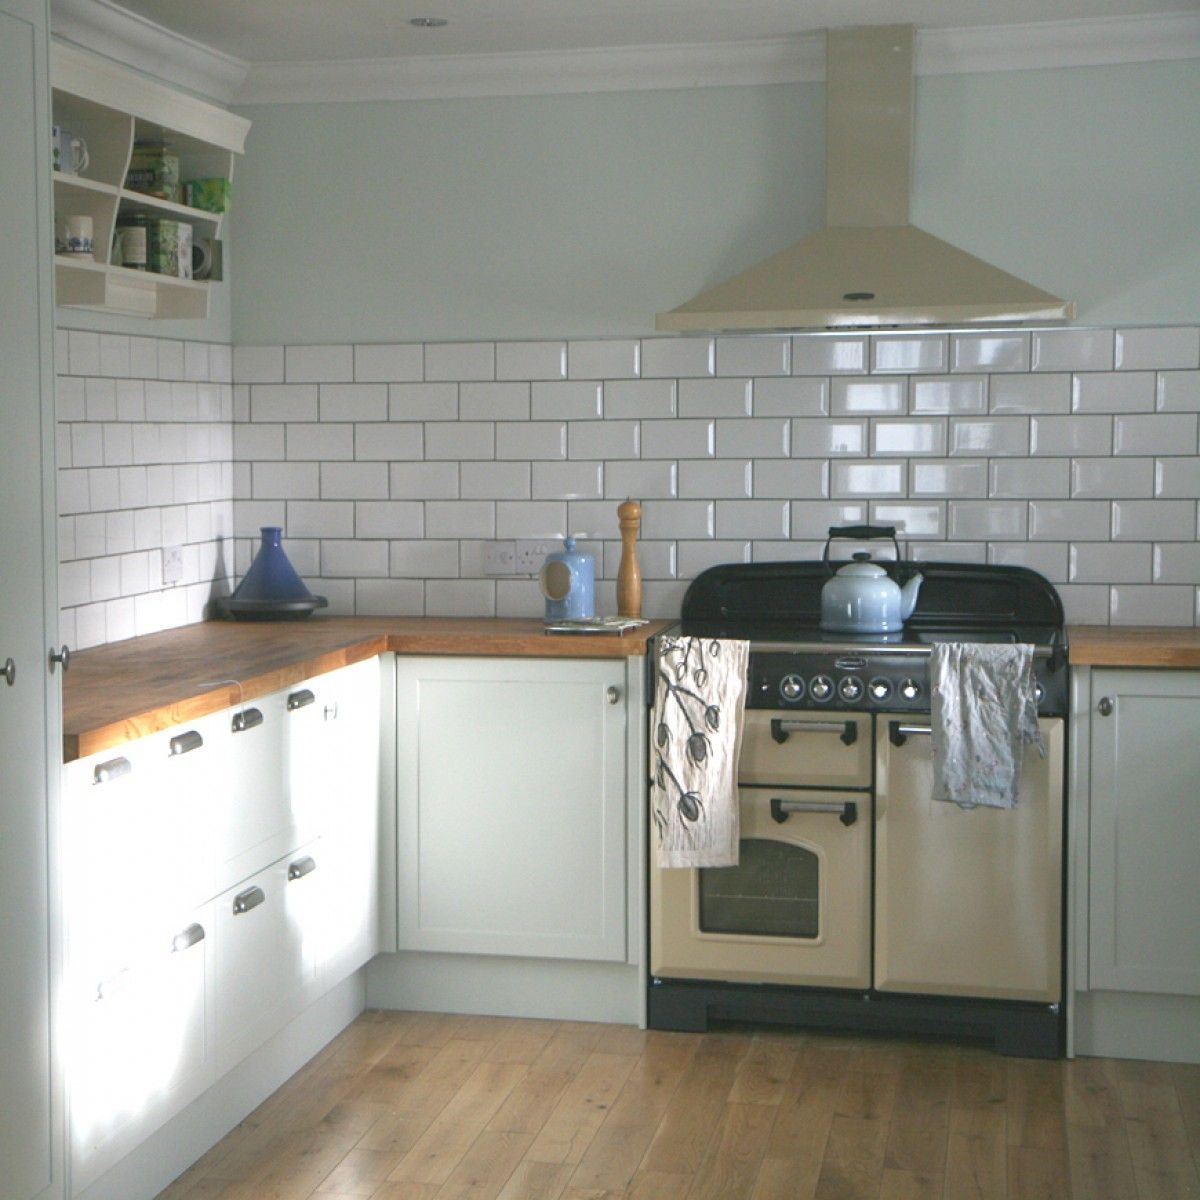 wall tile for kitchen kidkraft red vintage 53173 white subway in modern google search